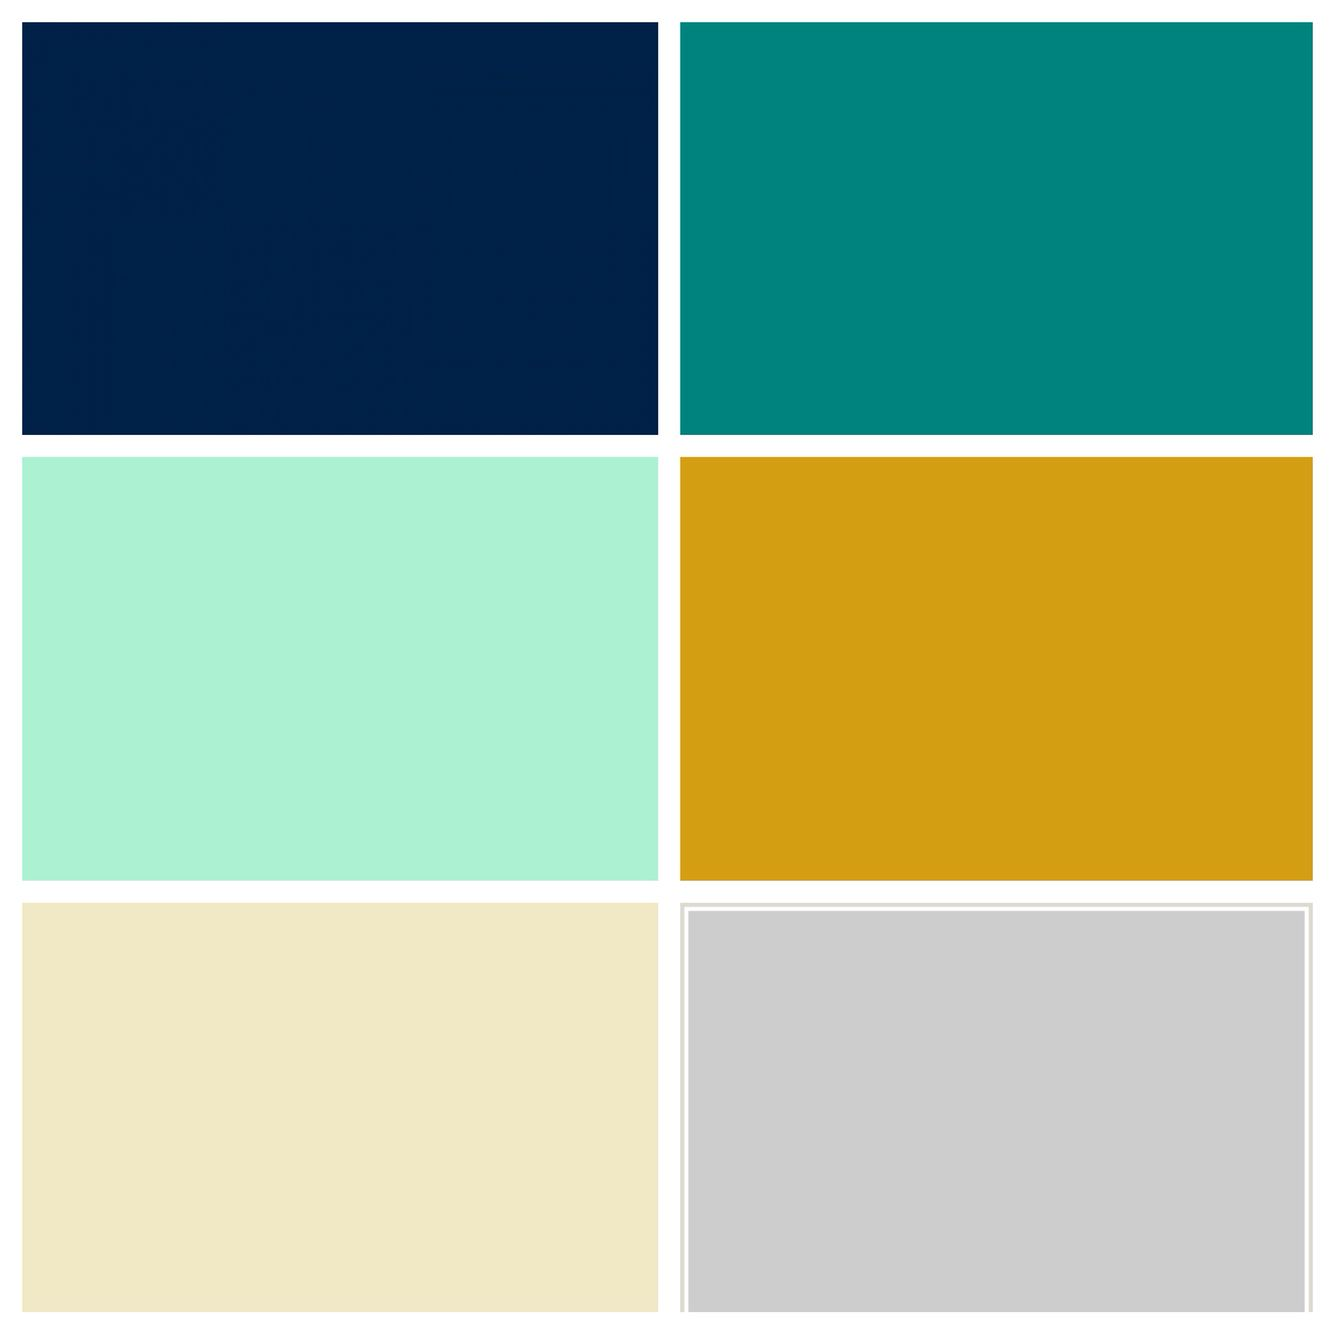 Gray Teal And Yellow Color Scheme Decor Inspiration: Nursery Color Pallet: Navy, Teal, Mint, Mustard, Beige